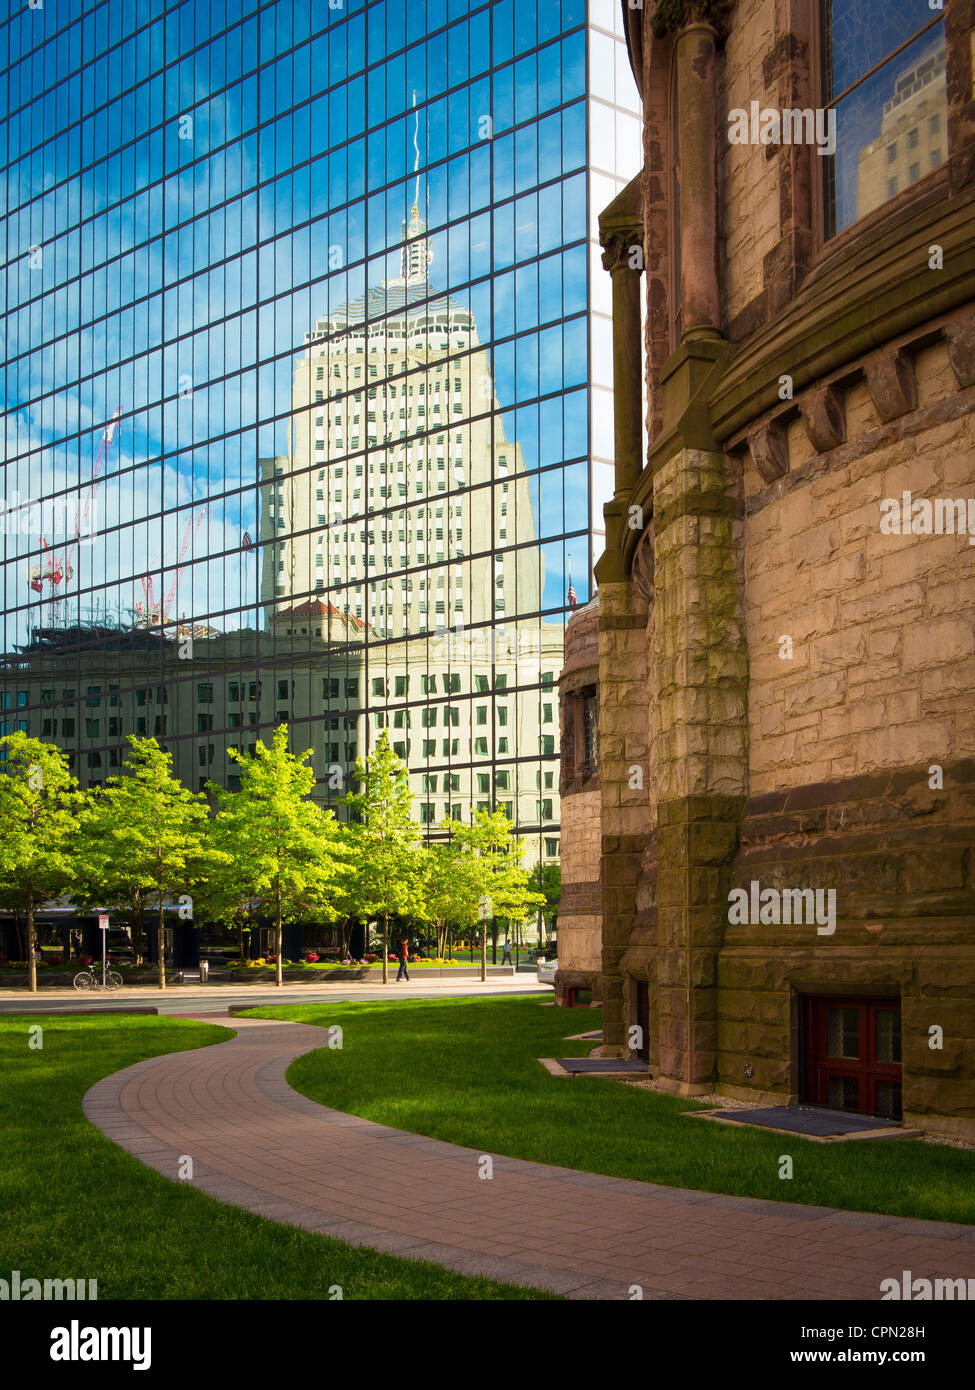 Buildings at Boston' s Copley Place - Stock Image